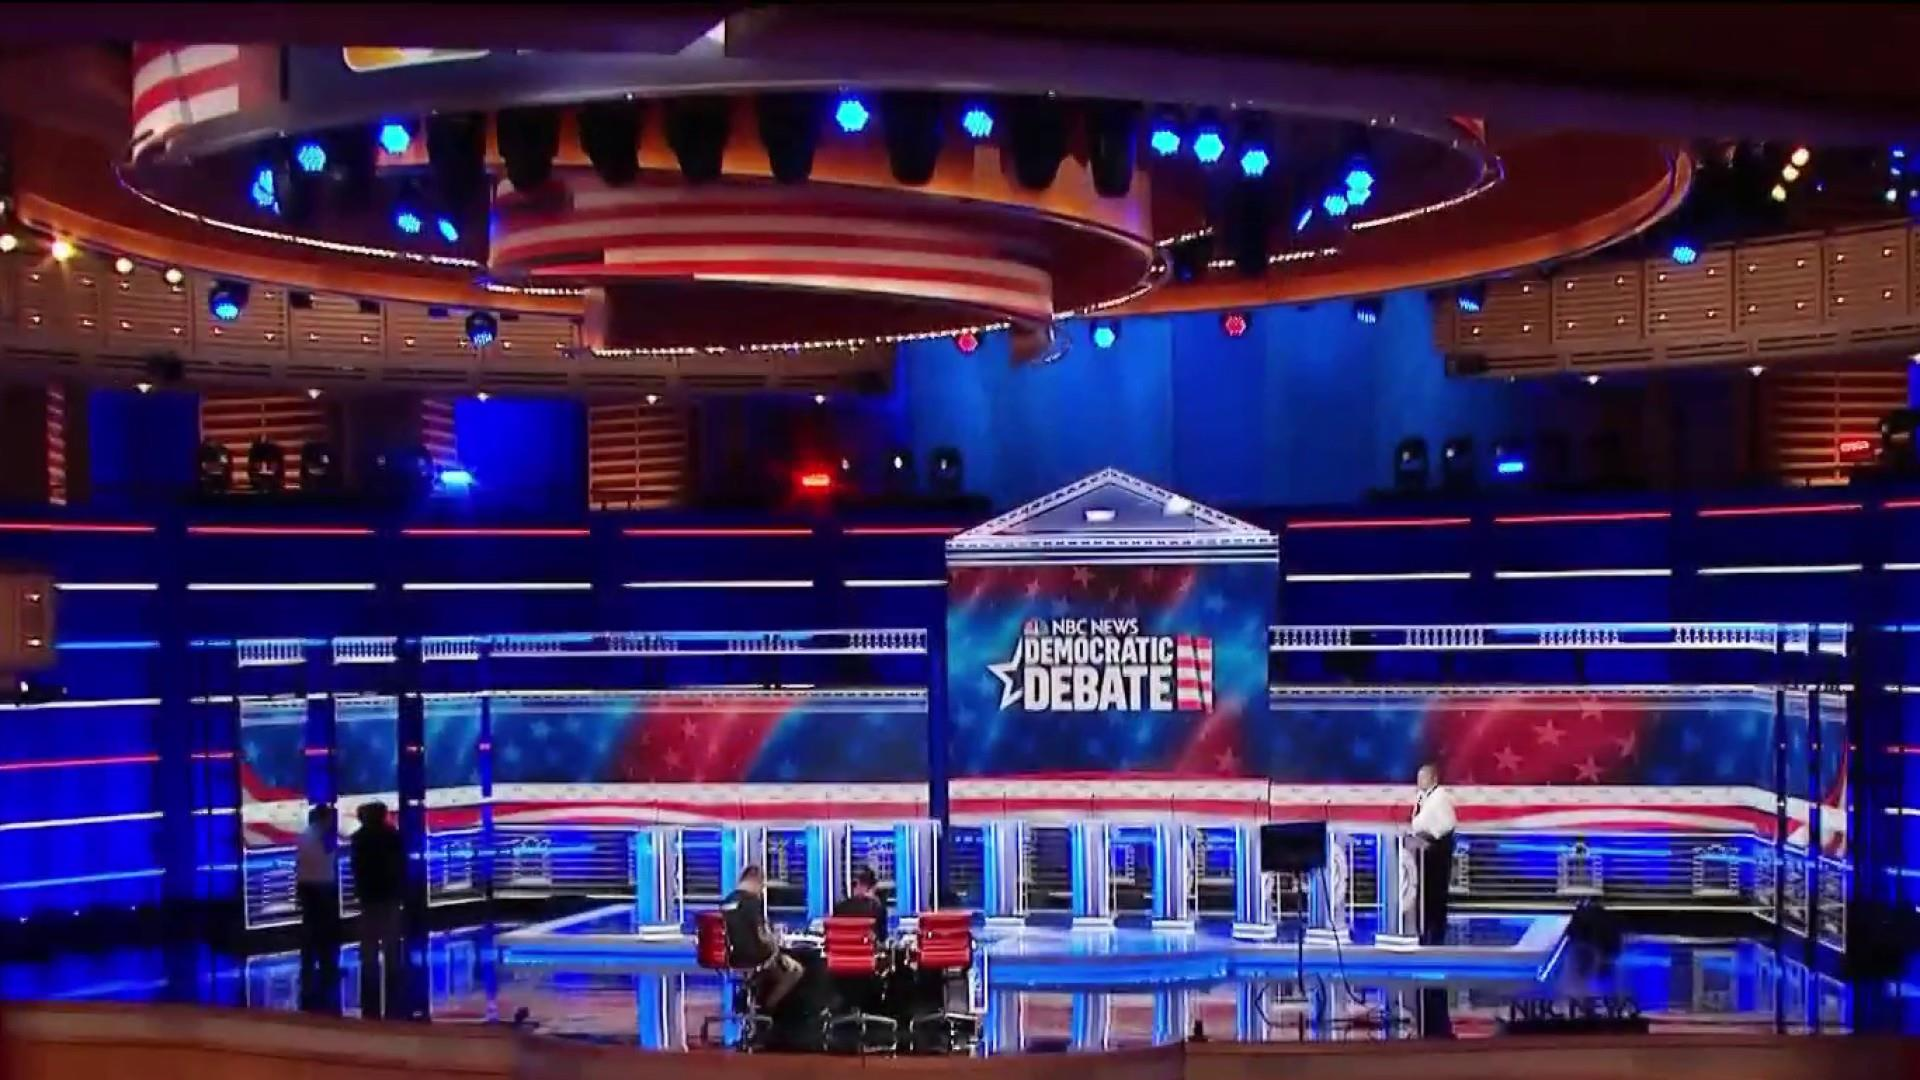 Candidates square off in first 2020 Democratic presidential debate